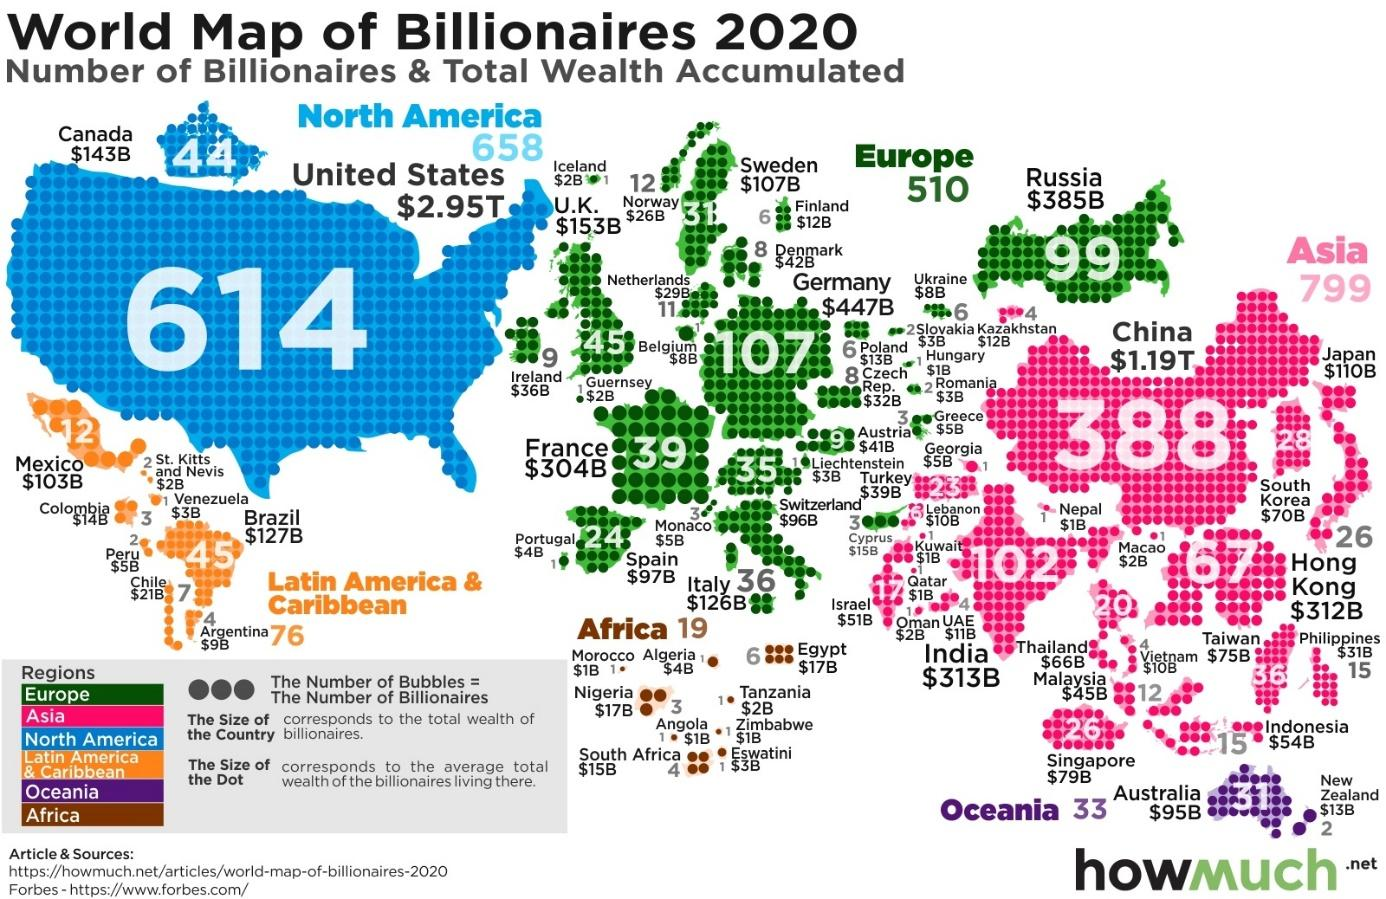 In One Map: How Many Billionaires Are in The World